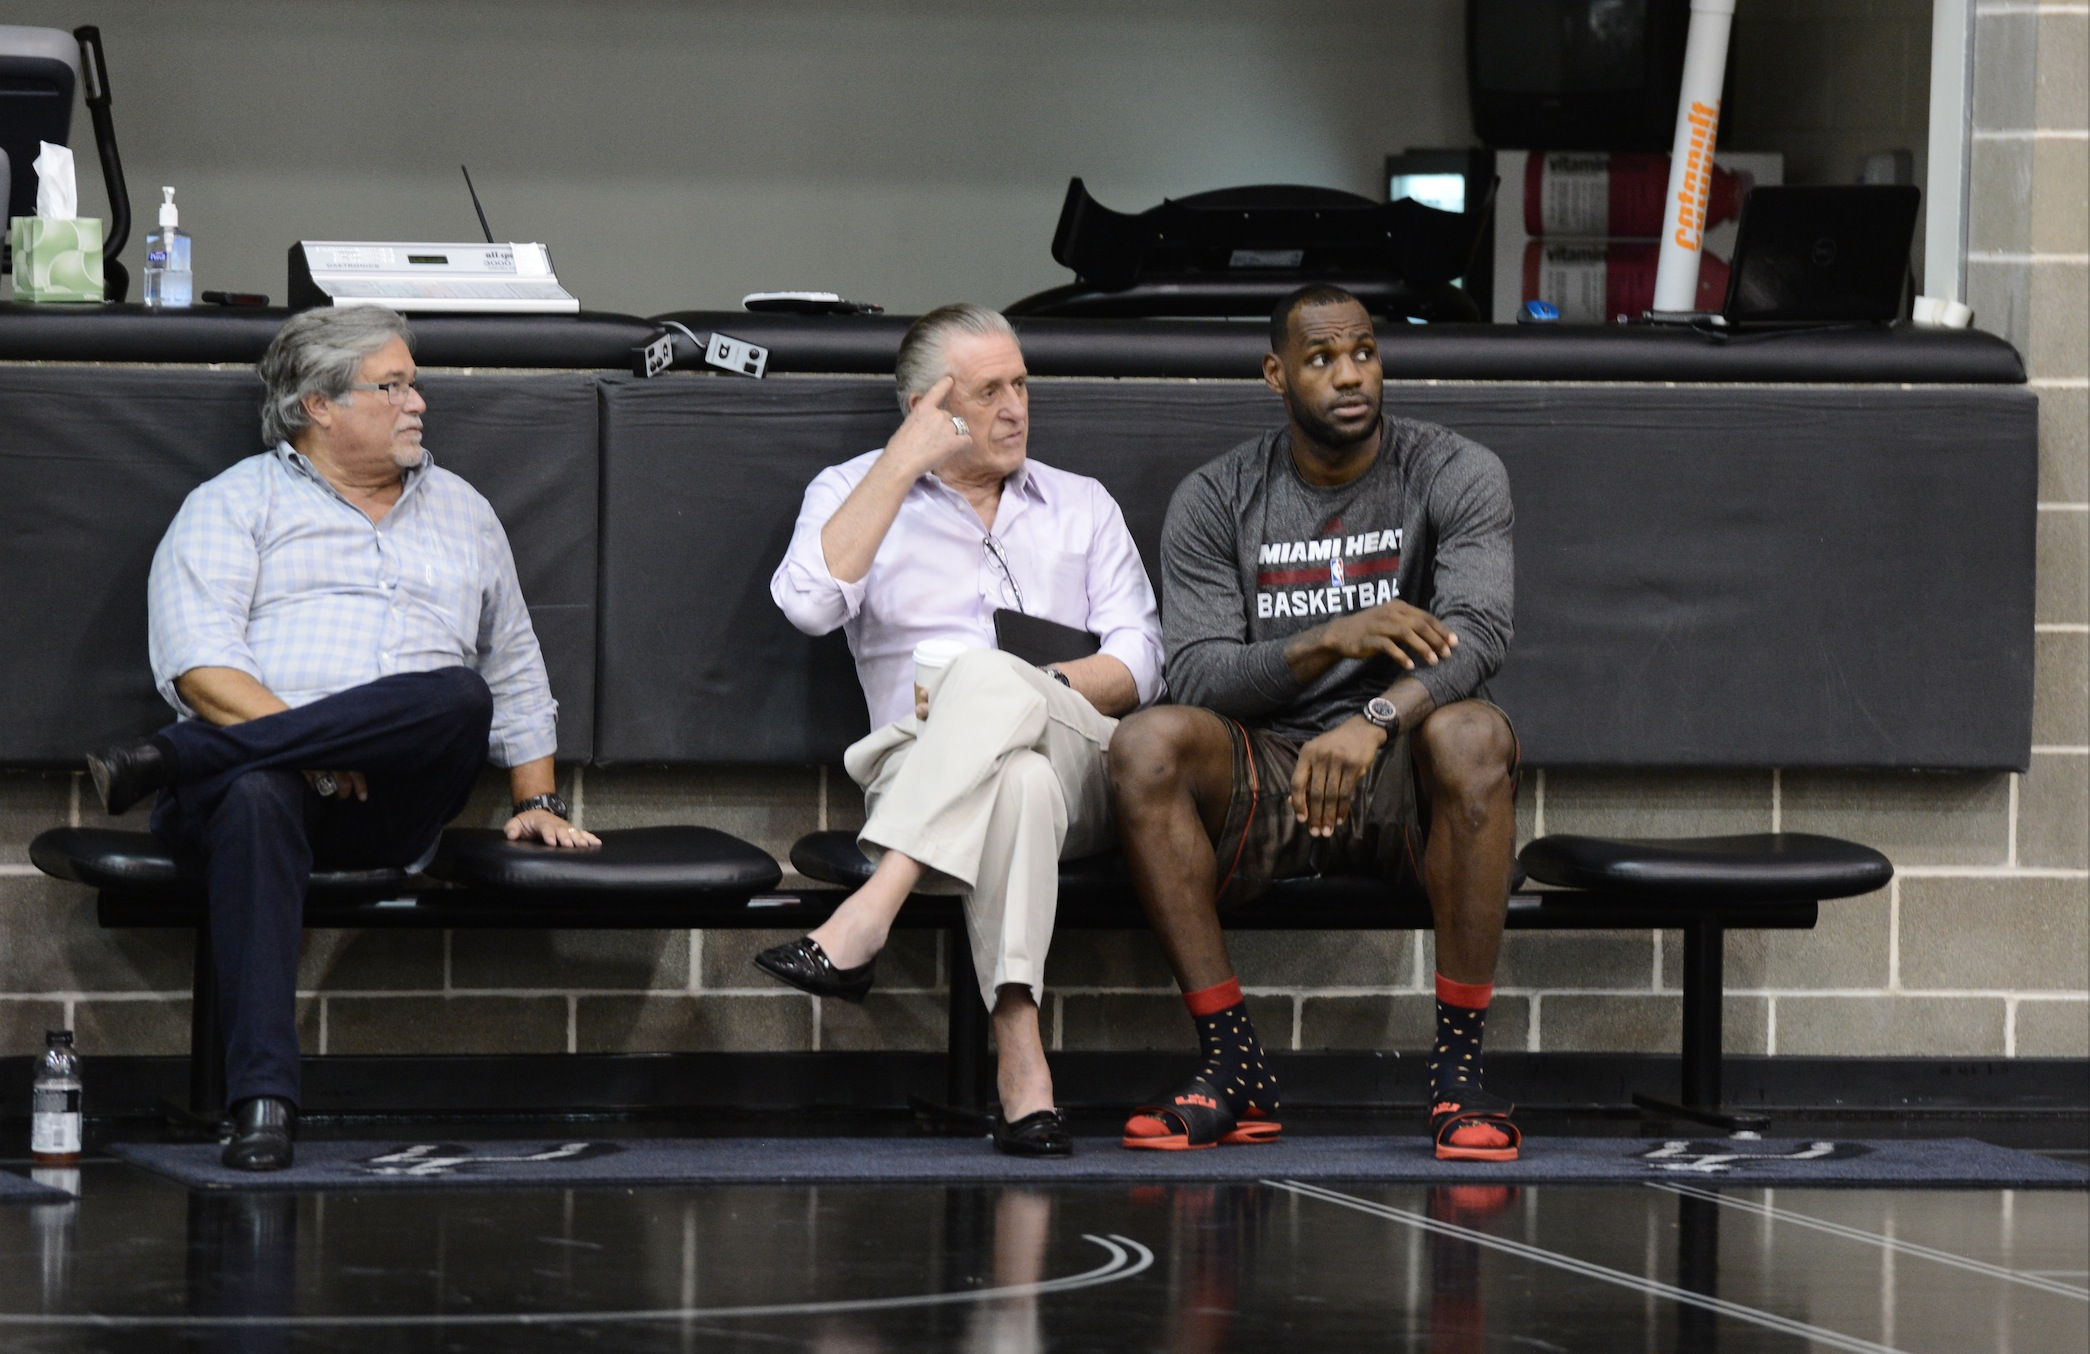 LeBron James, agent to meet with Heat's